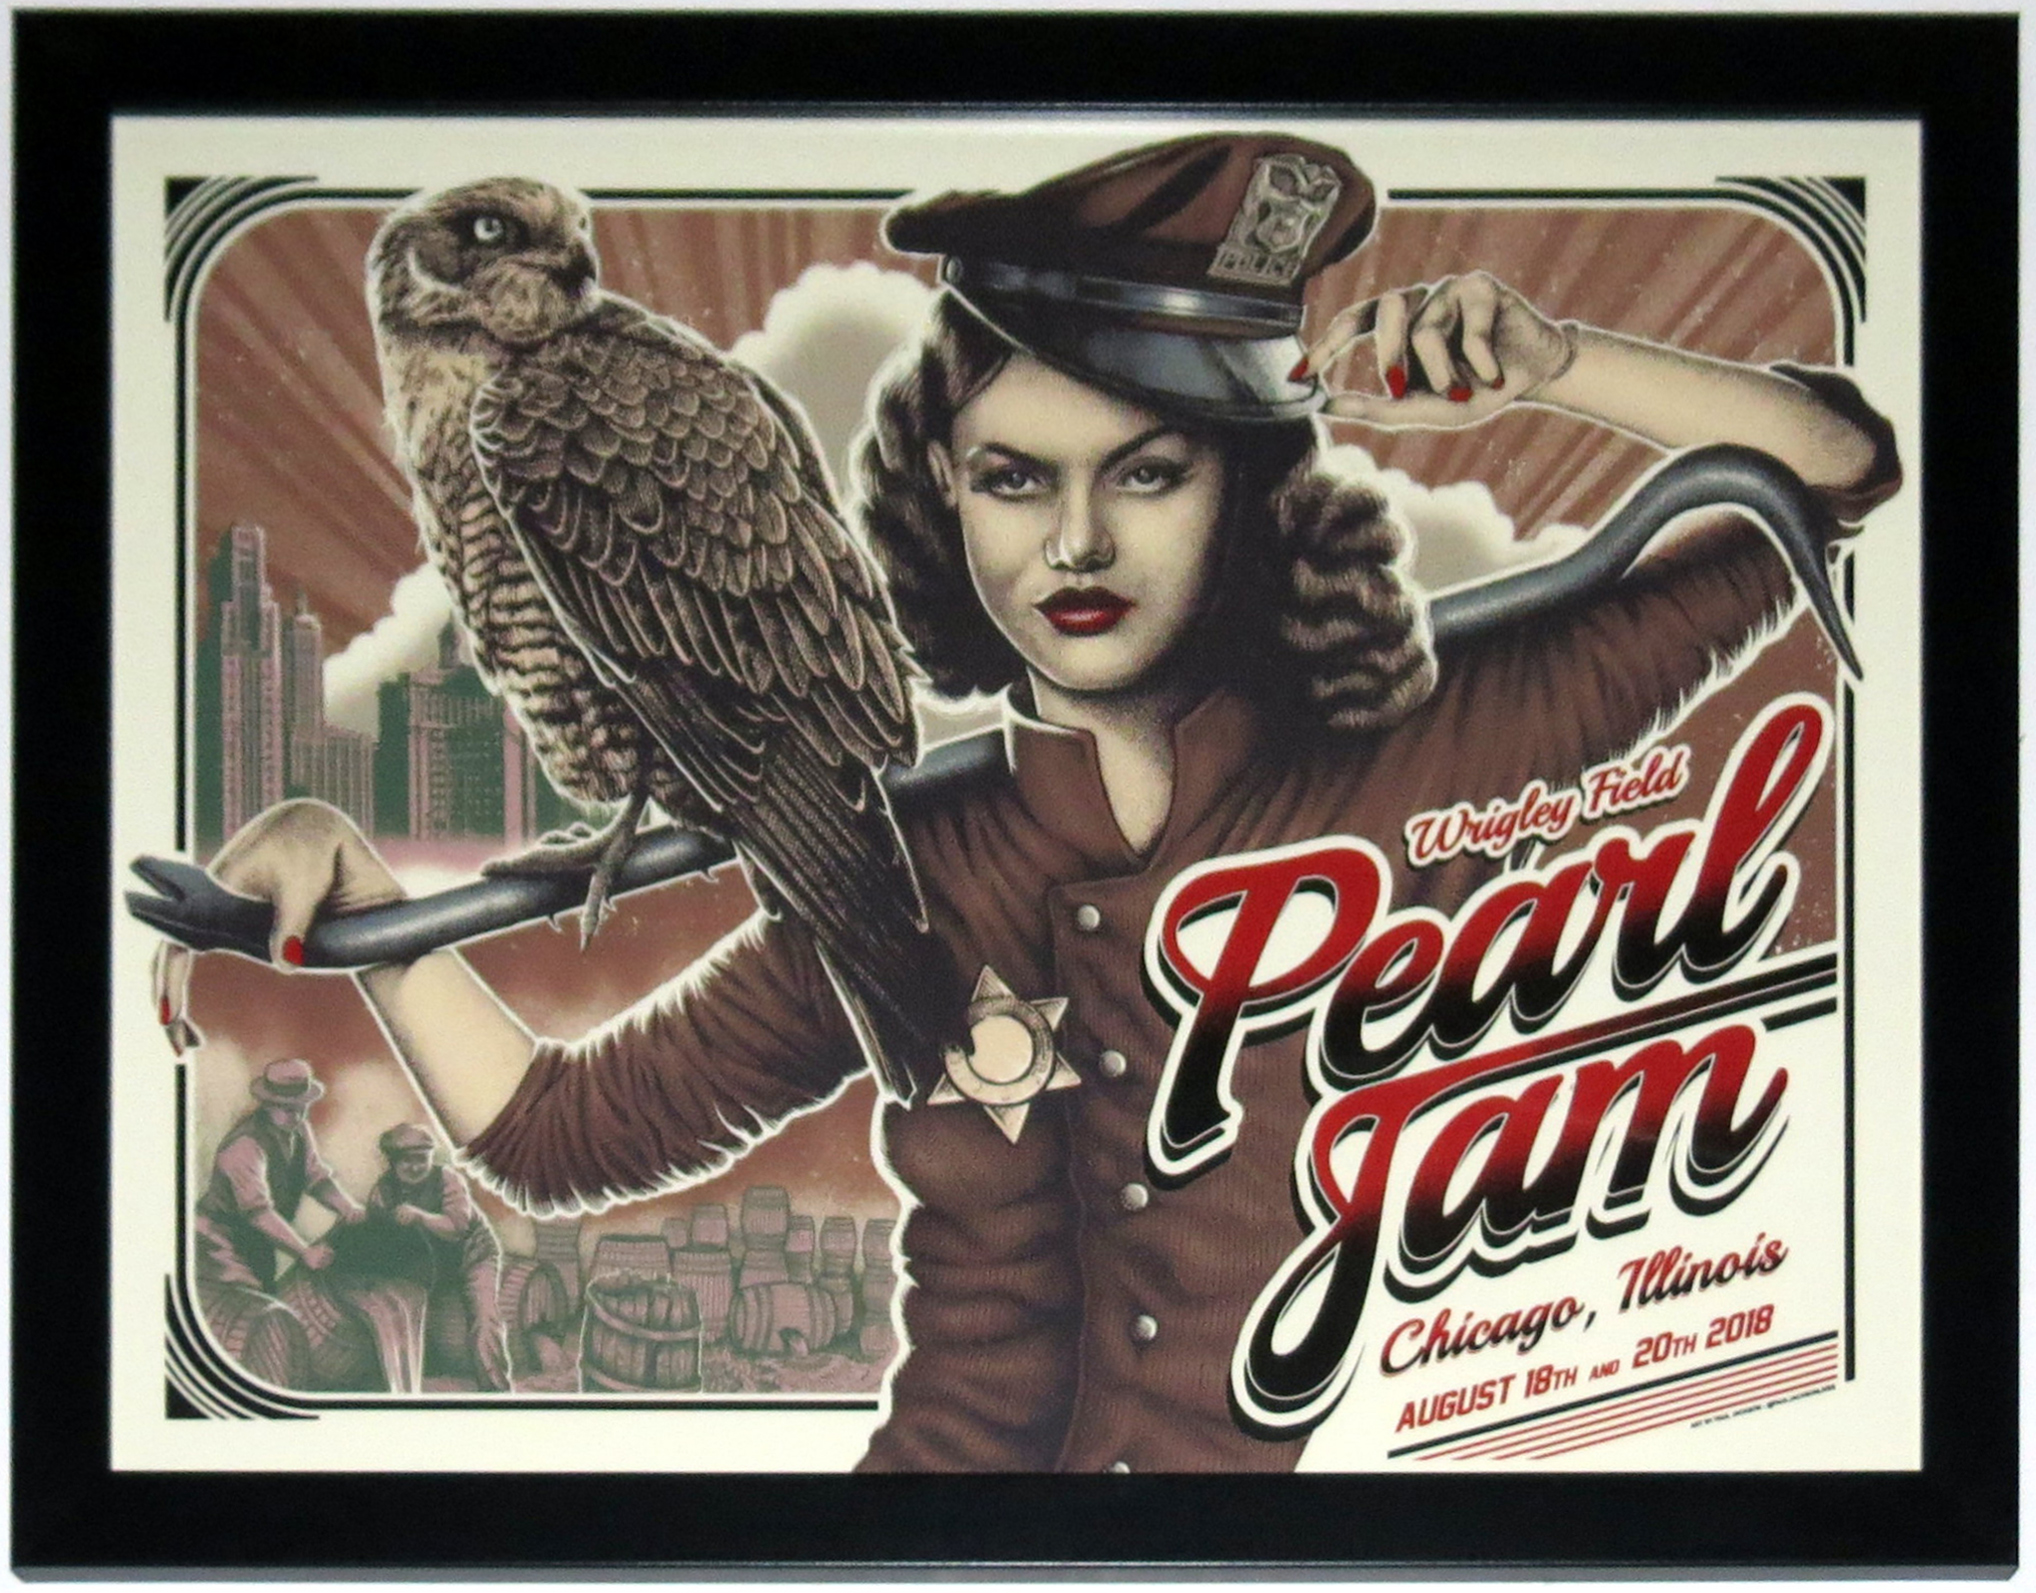 Pearl Jam 2018 Wrigley Field Chicago Tour Poster 8/18/18 8/20/18 Paul Jackson - Professionally Framed